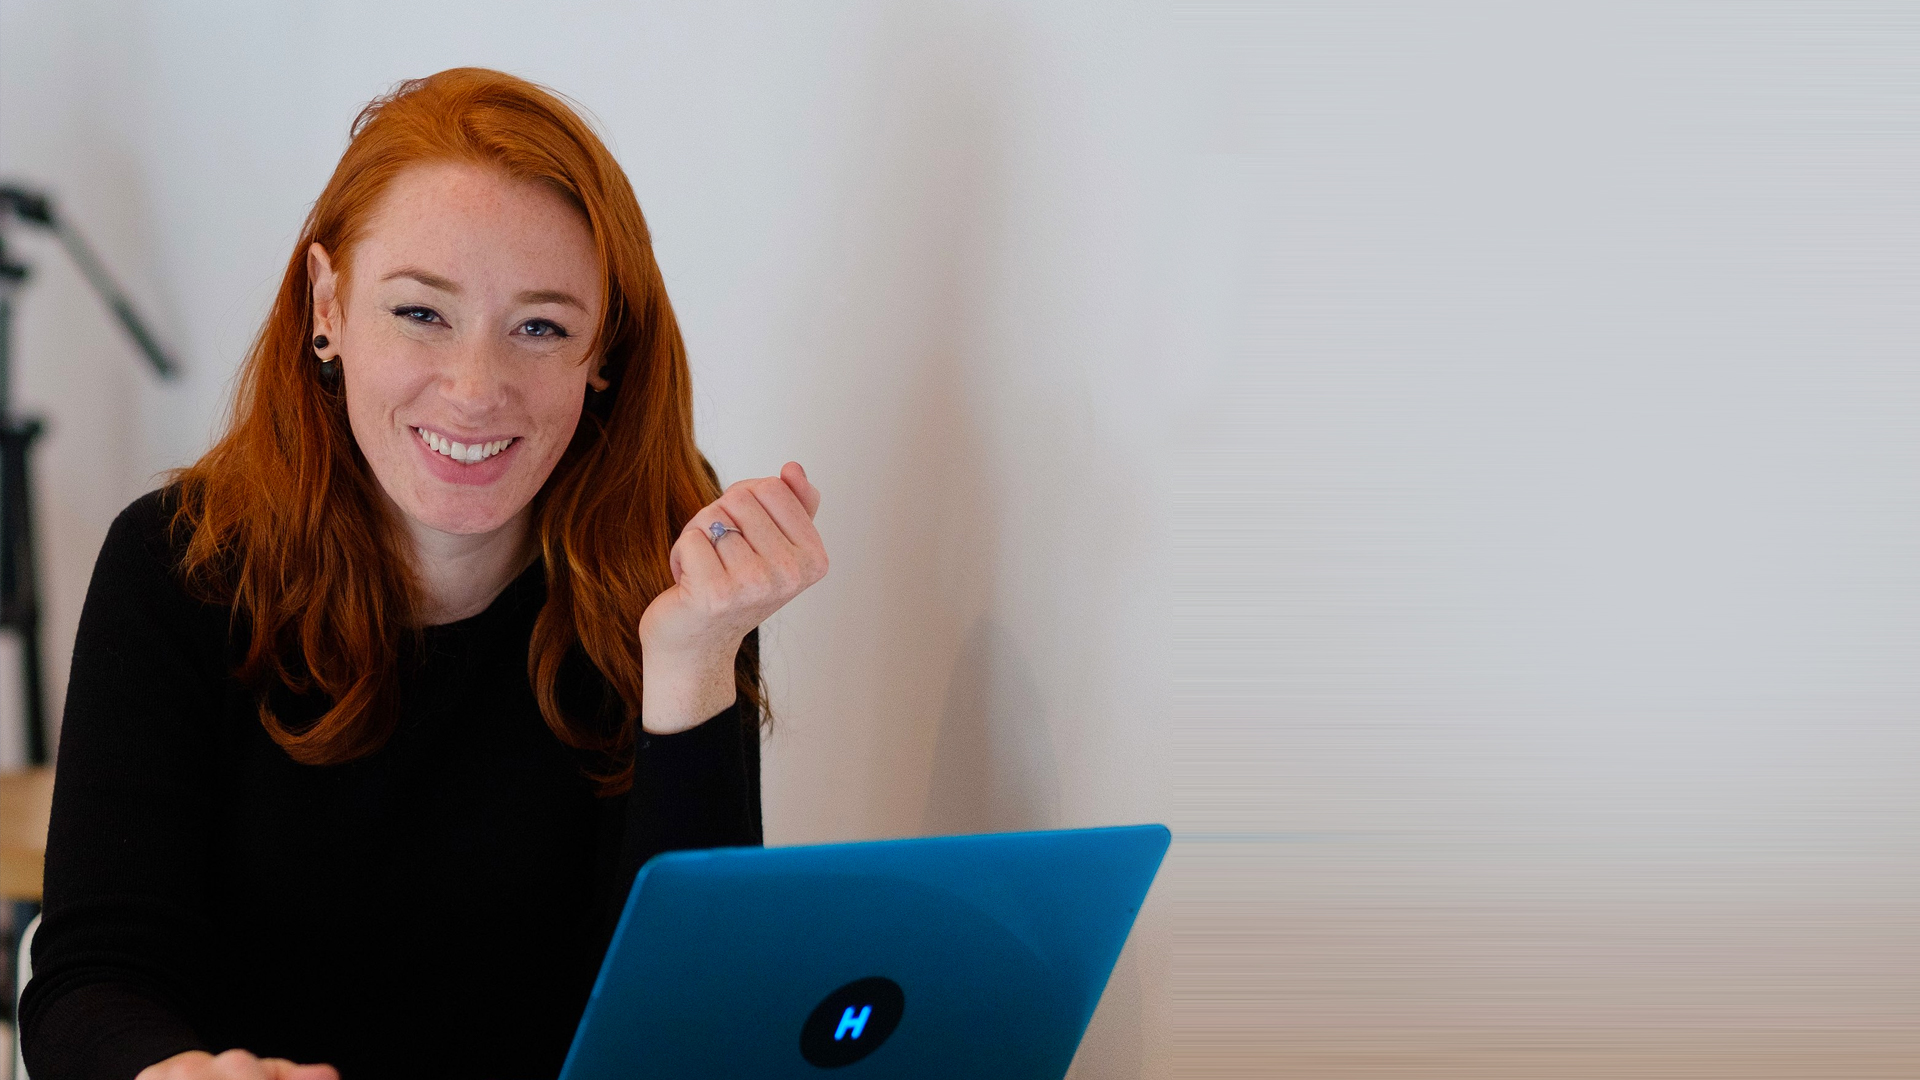 Catch a glimpse of the exclusive workshop led by Dr. Hannah Fry at Mendix World 2.0